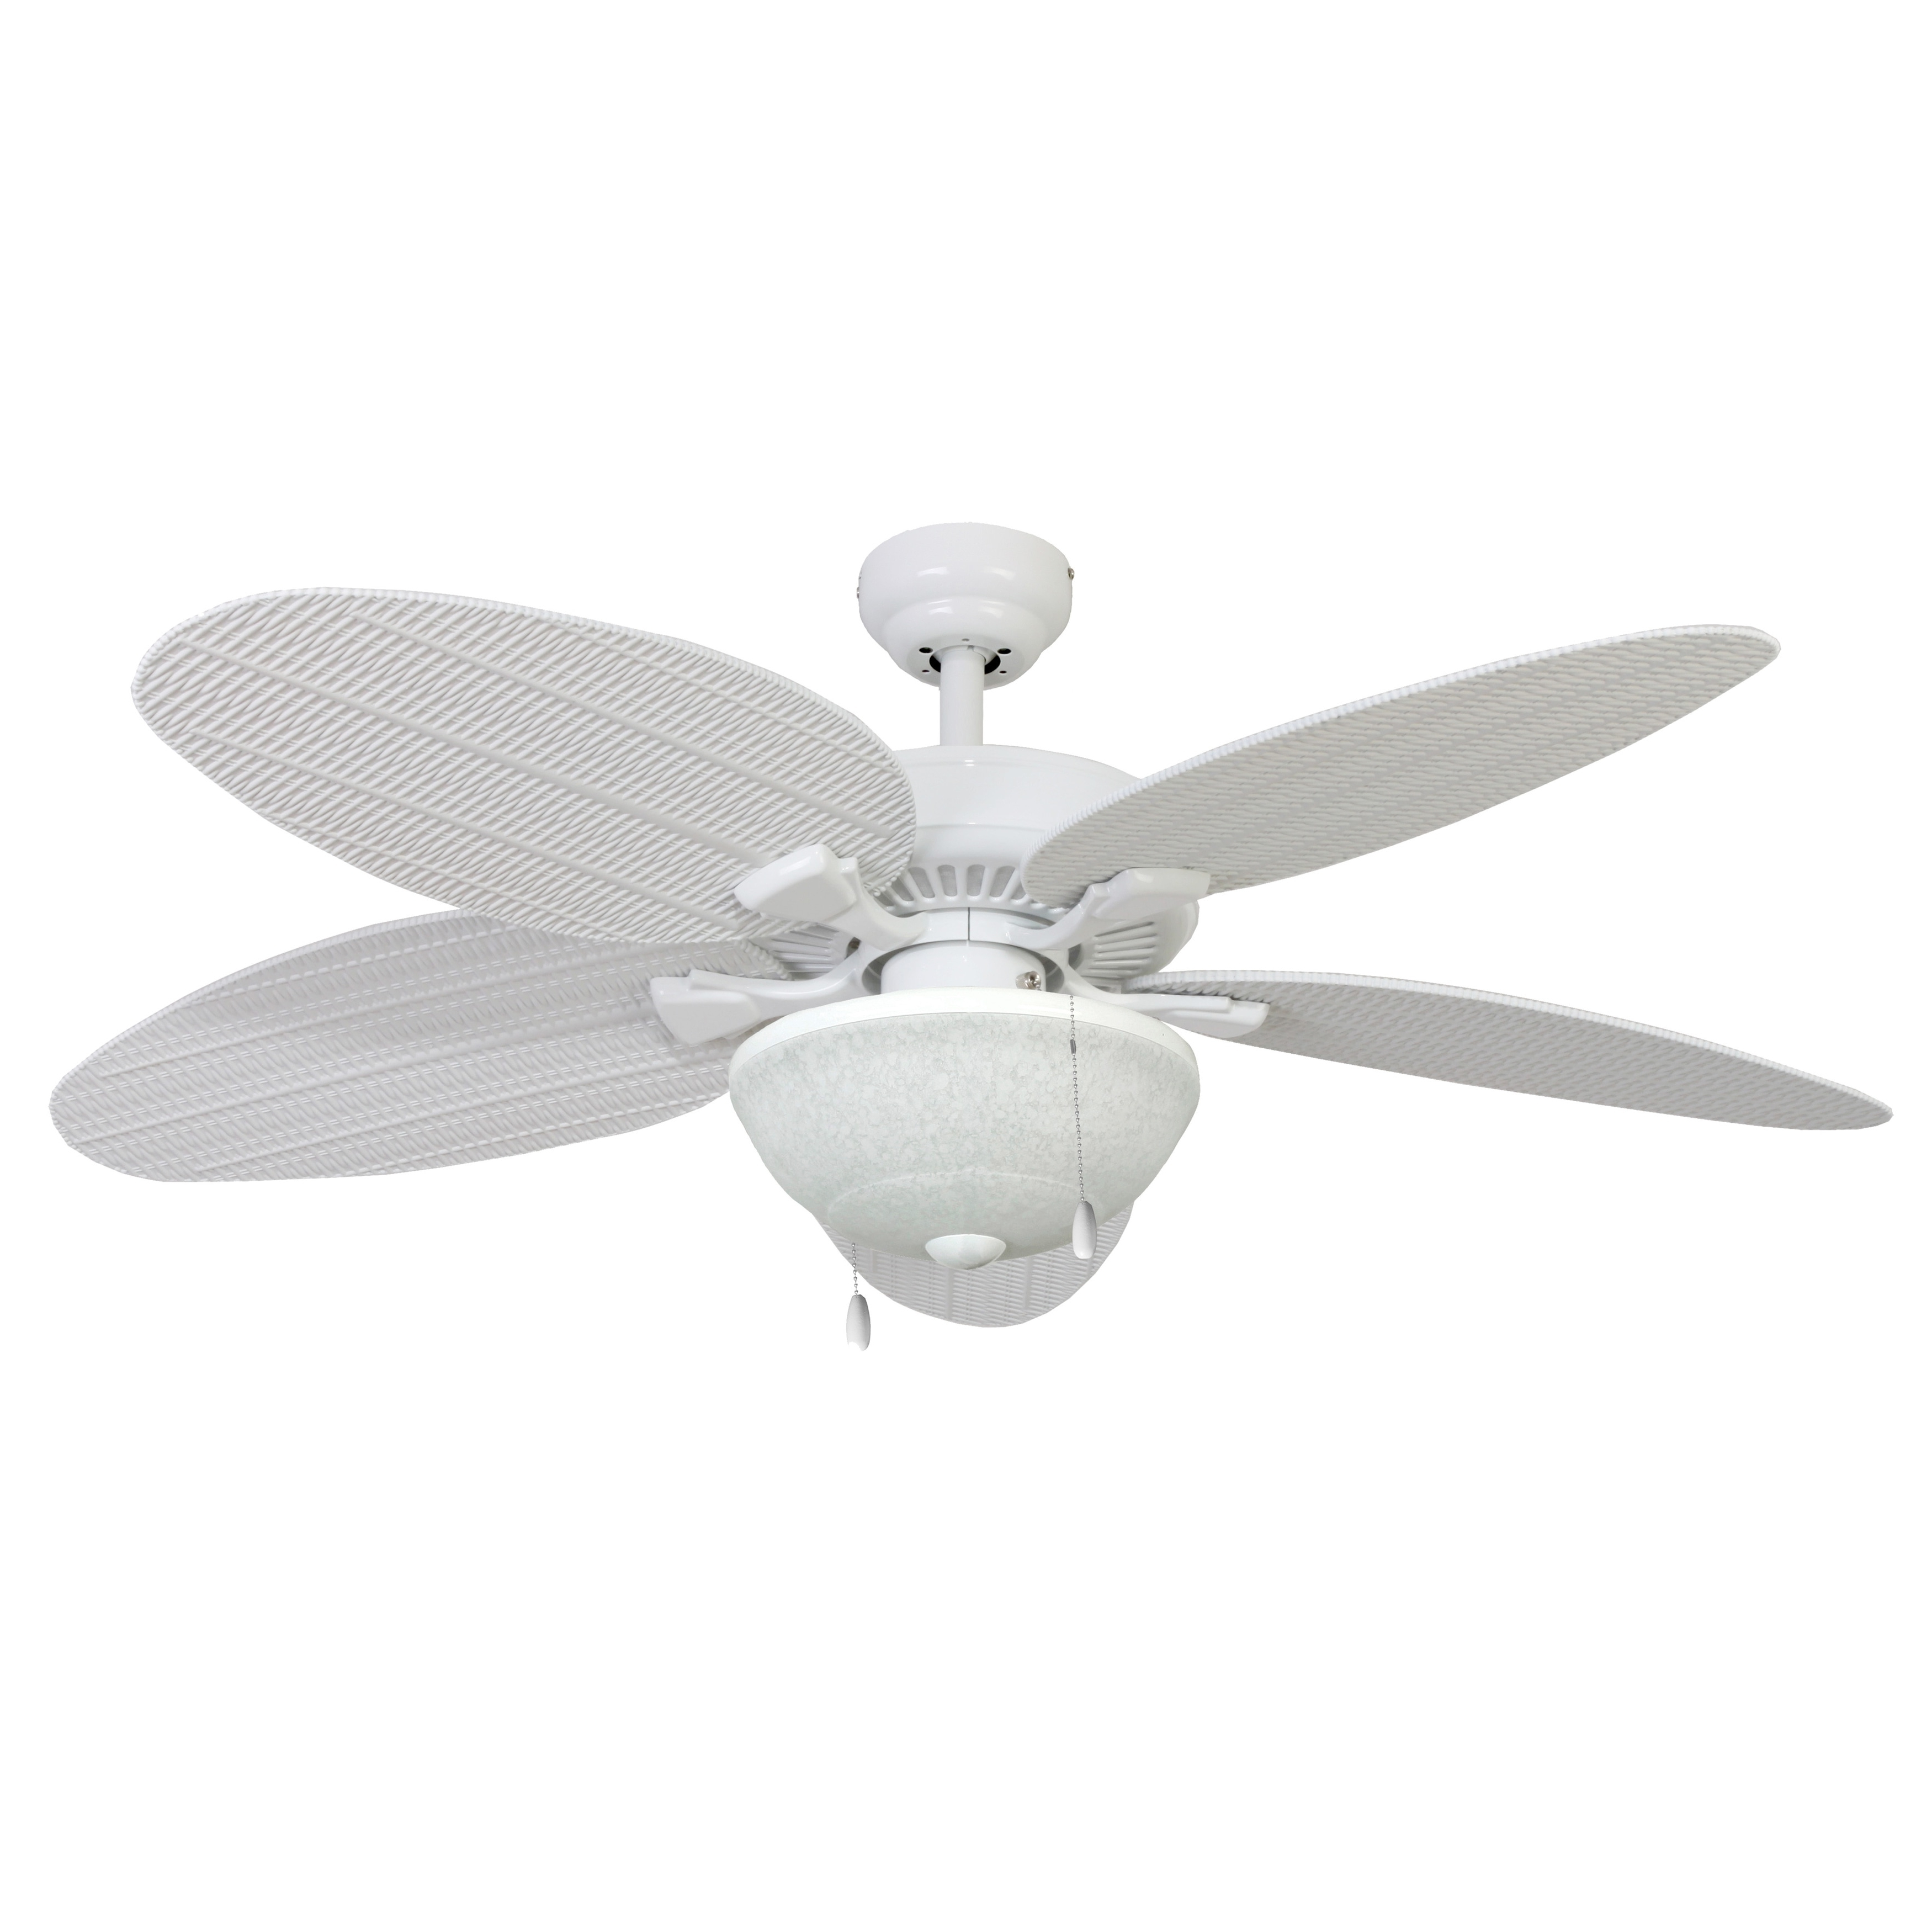 Preferred Wicker Outdoor Ceiling Fans With Lights Throughout Shop Ecosure Siesta Key 52 Inch Tropical, White Bowl Light Indoor (View 12 of 20)